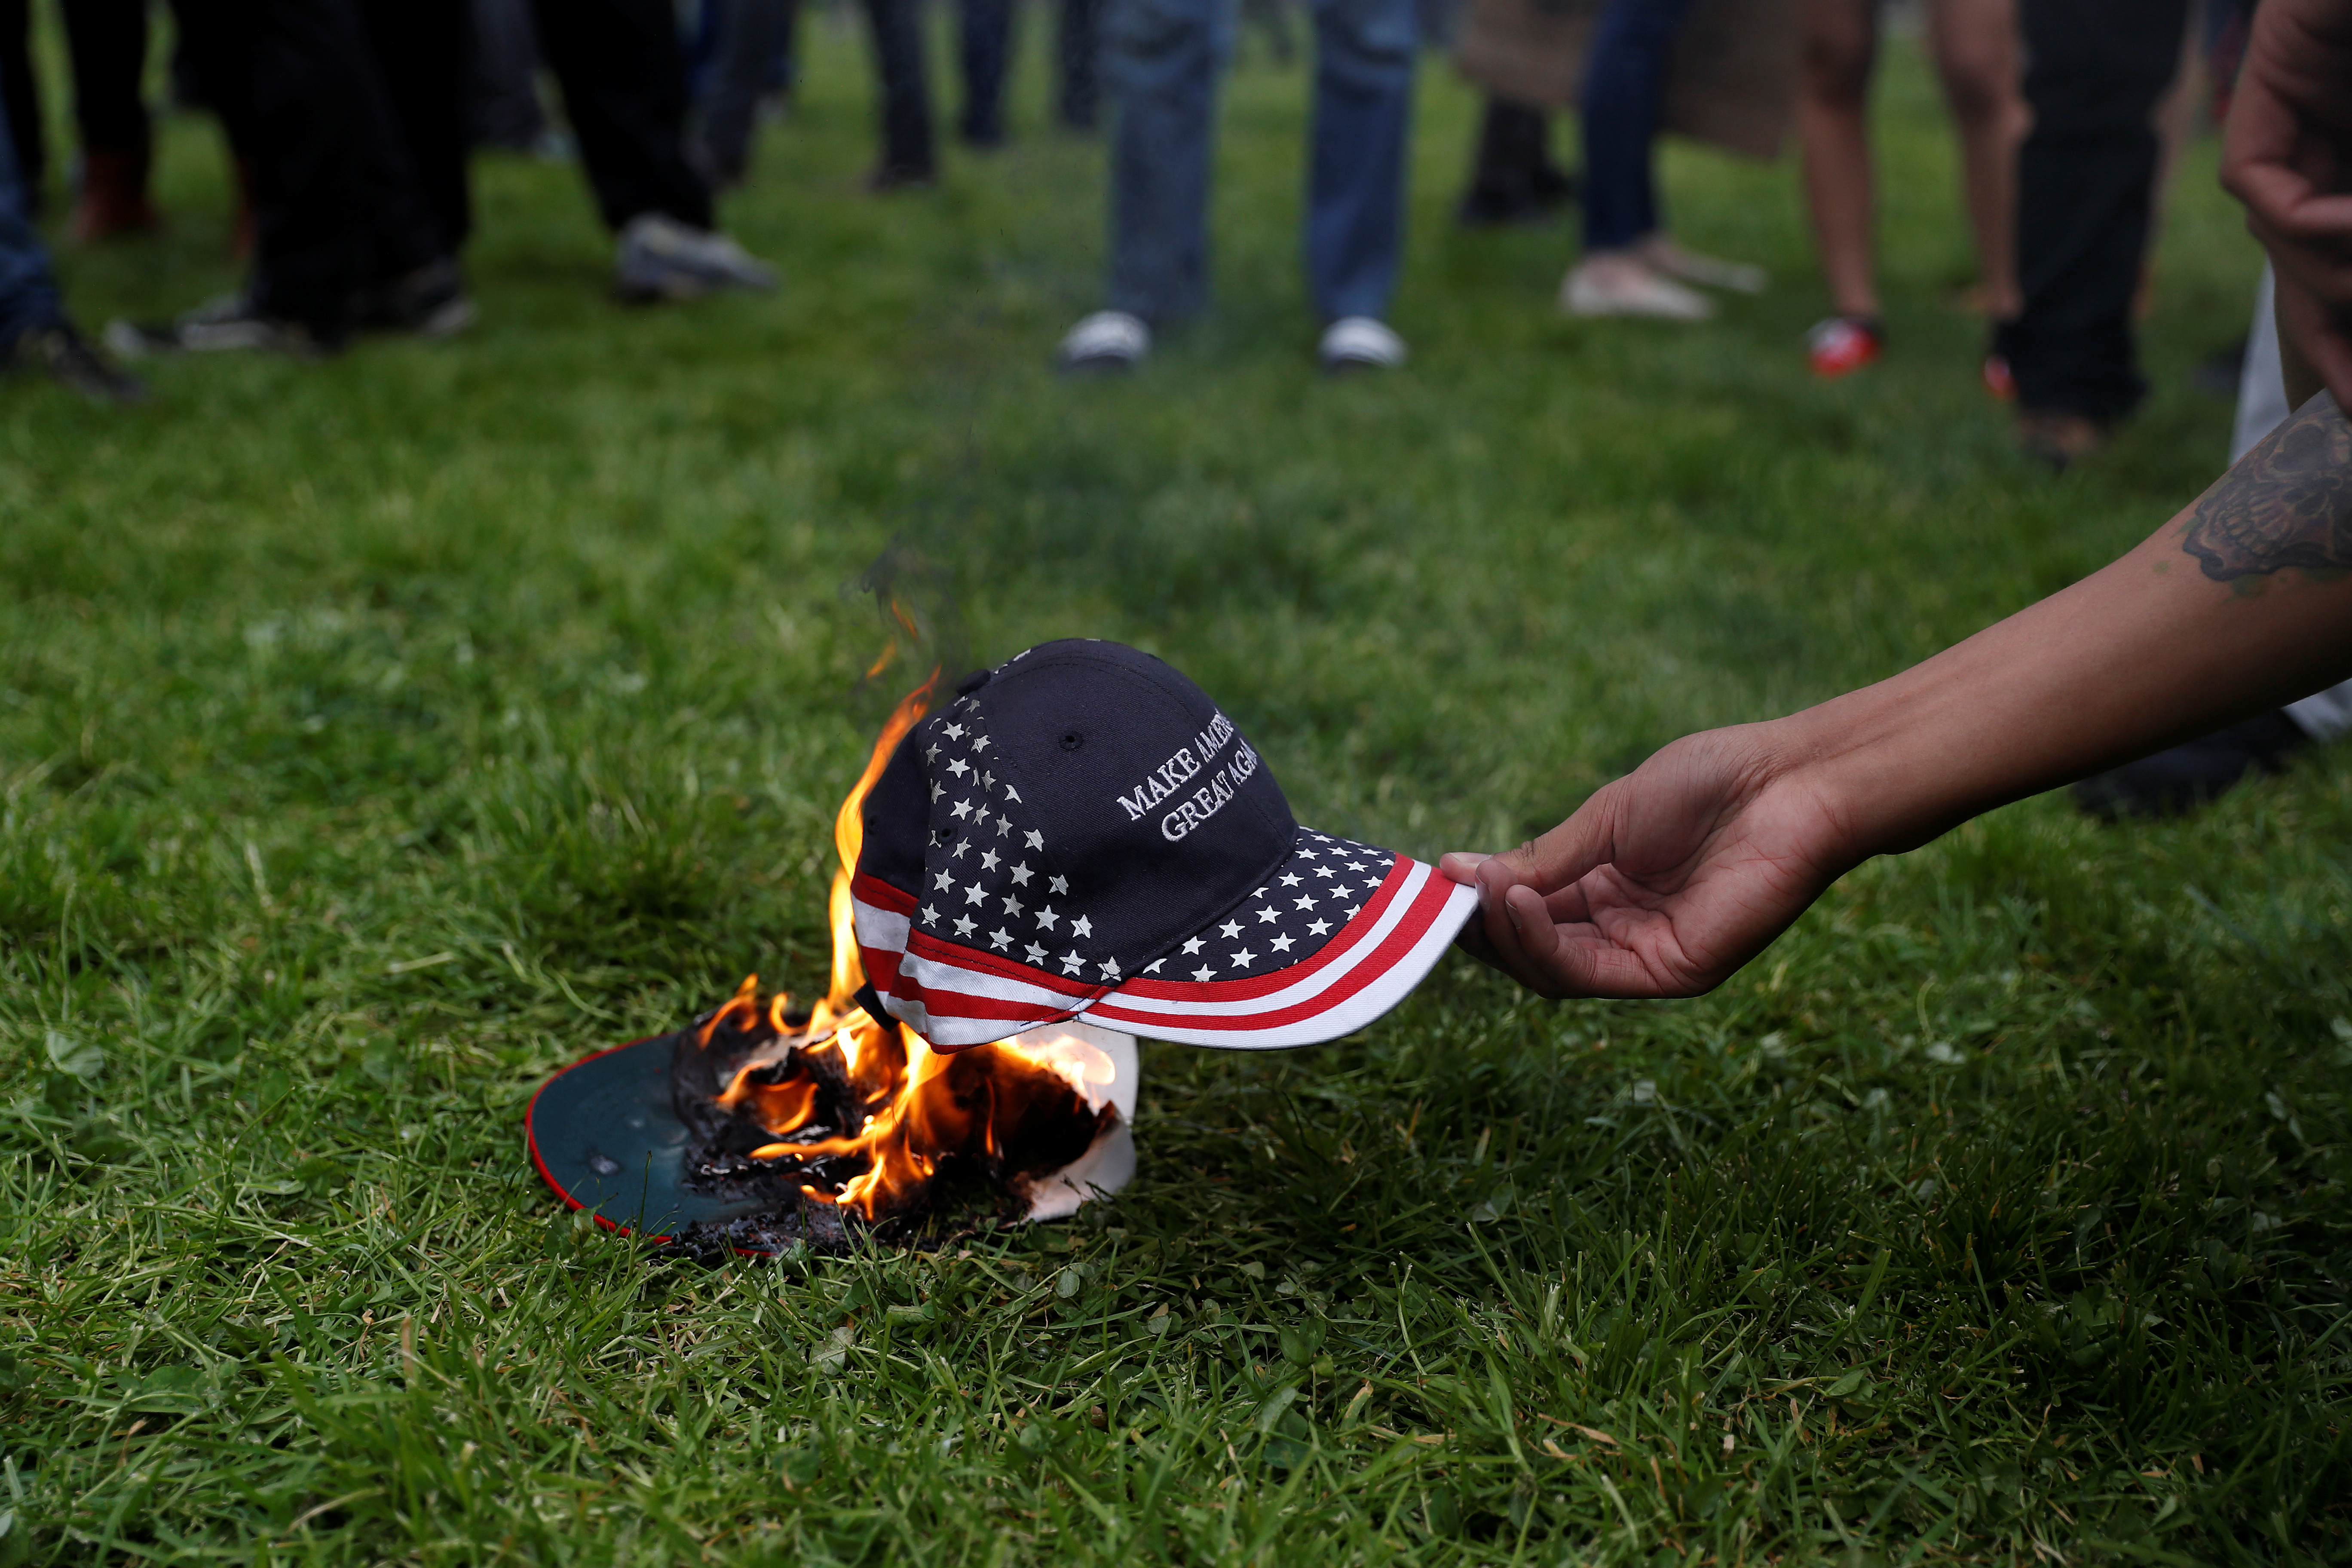 """A demonstrator in opposition of U.S. President Donald Trump sets a hat on fire during a """"People 4 Trump"""" rally in Berkeley, California"""